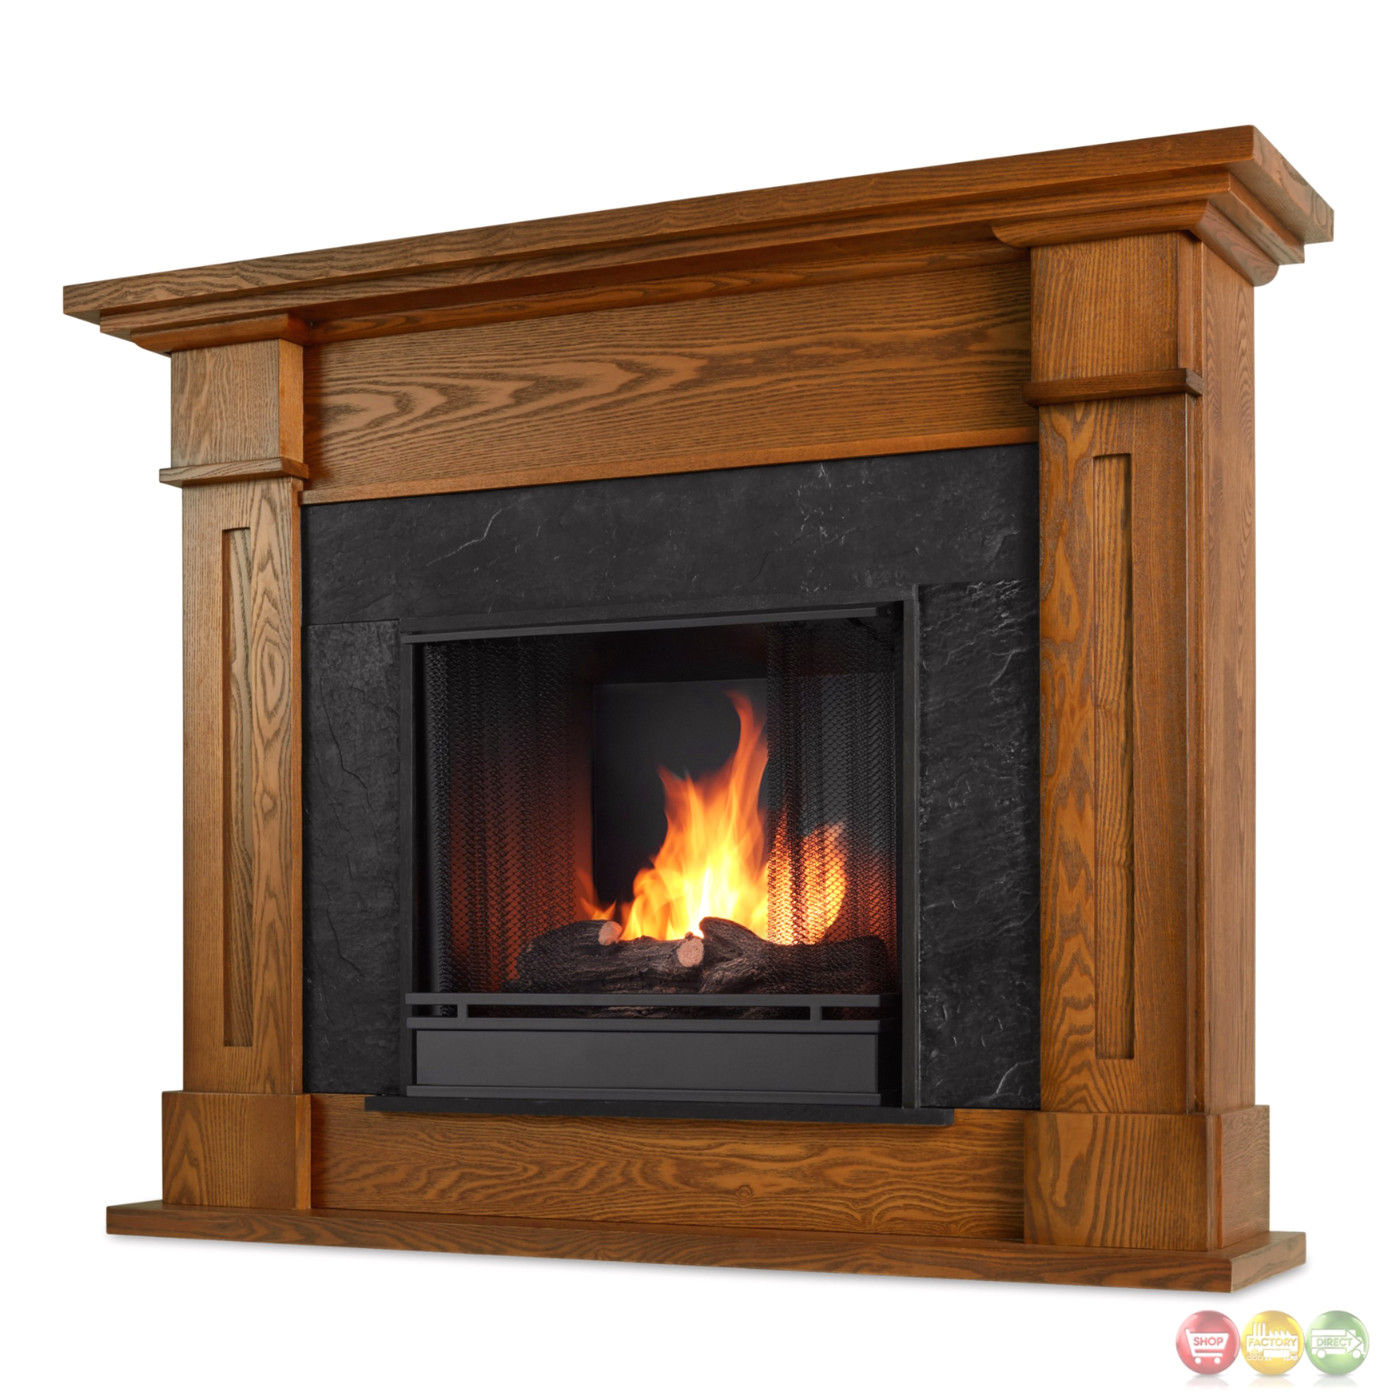 Kipling Ventless Gel Fuel Fireplace In Burnished Oak With